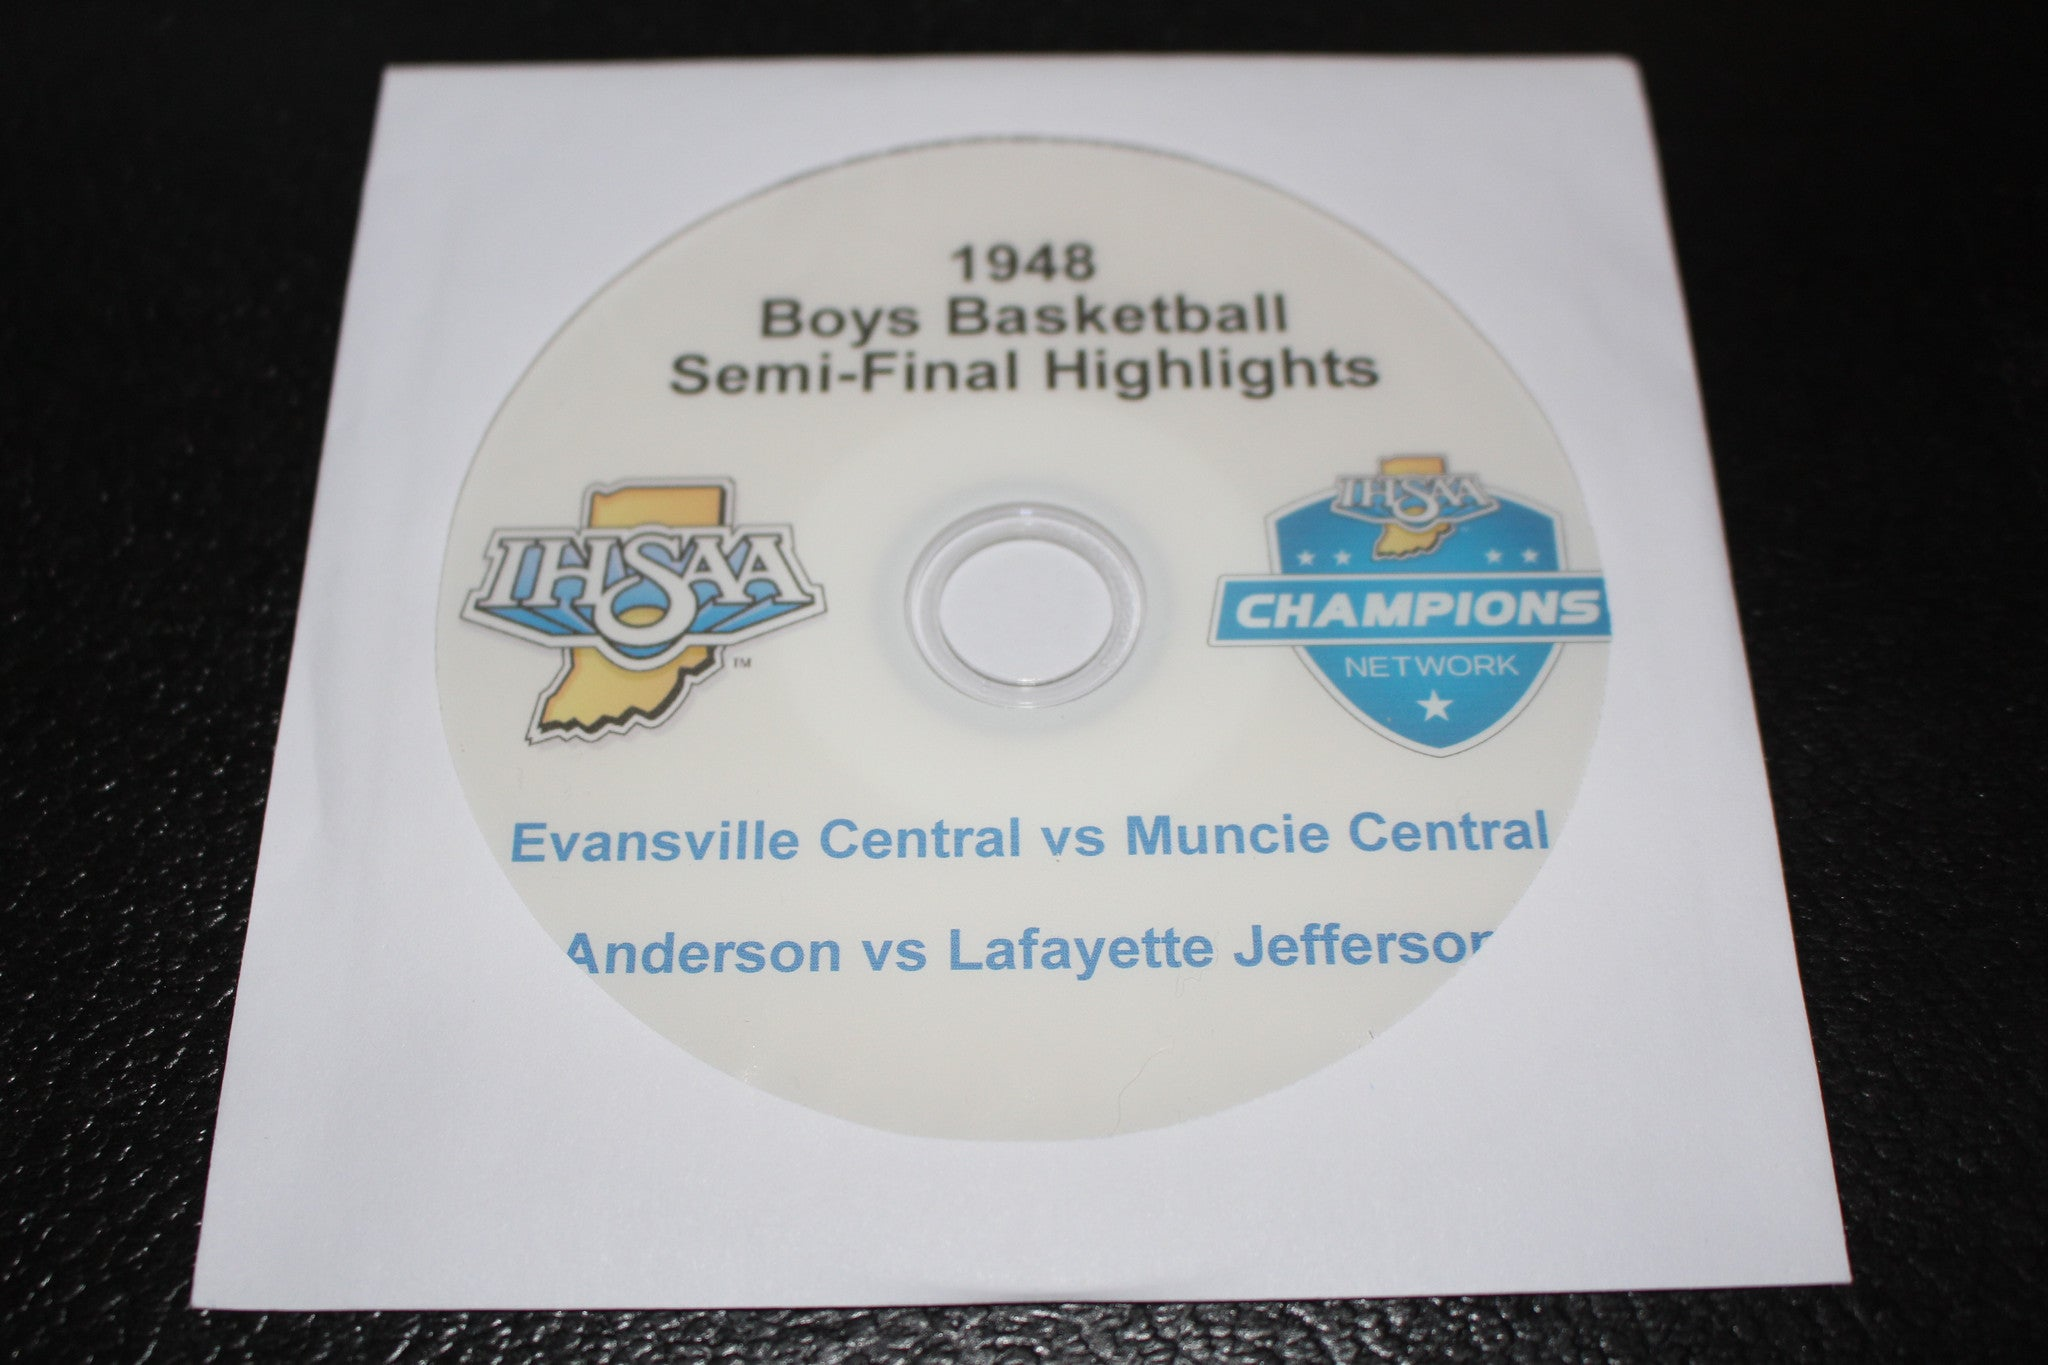 1948 Indiana High School Basketball Semi-Finals Highlights DVD - Vintage Indy Sports